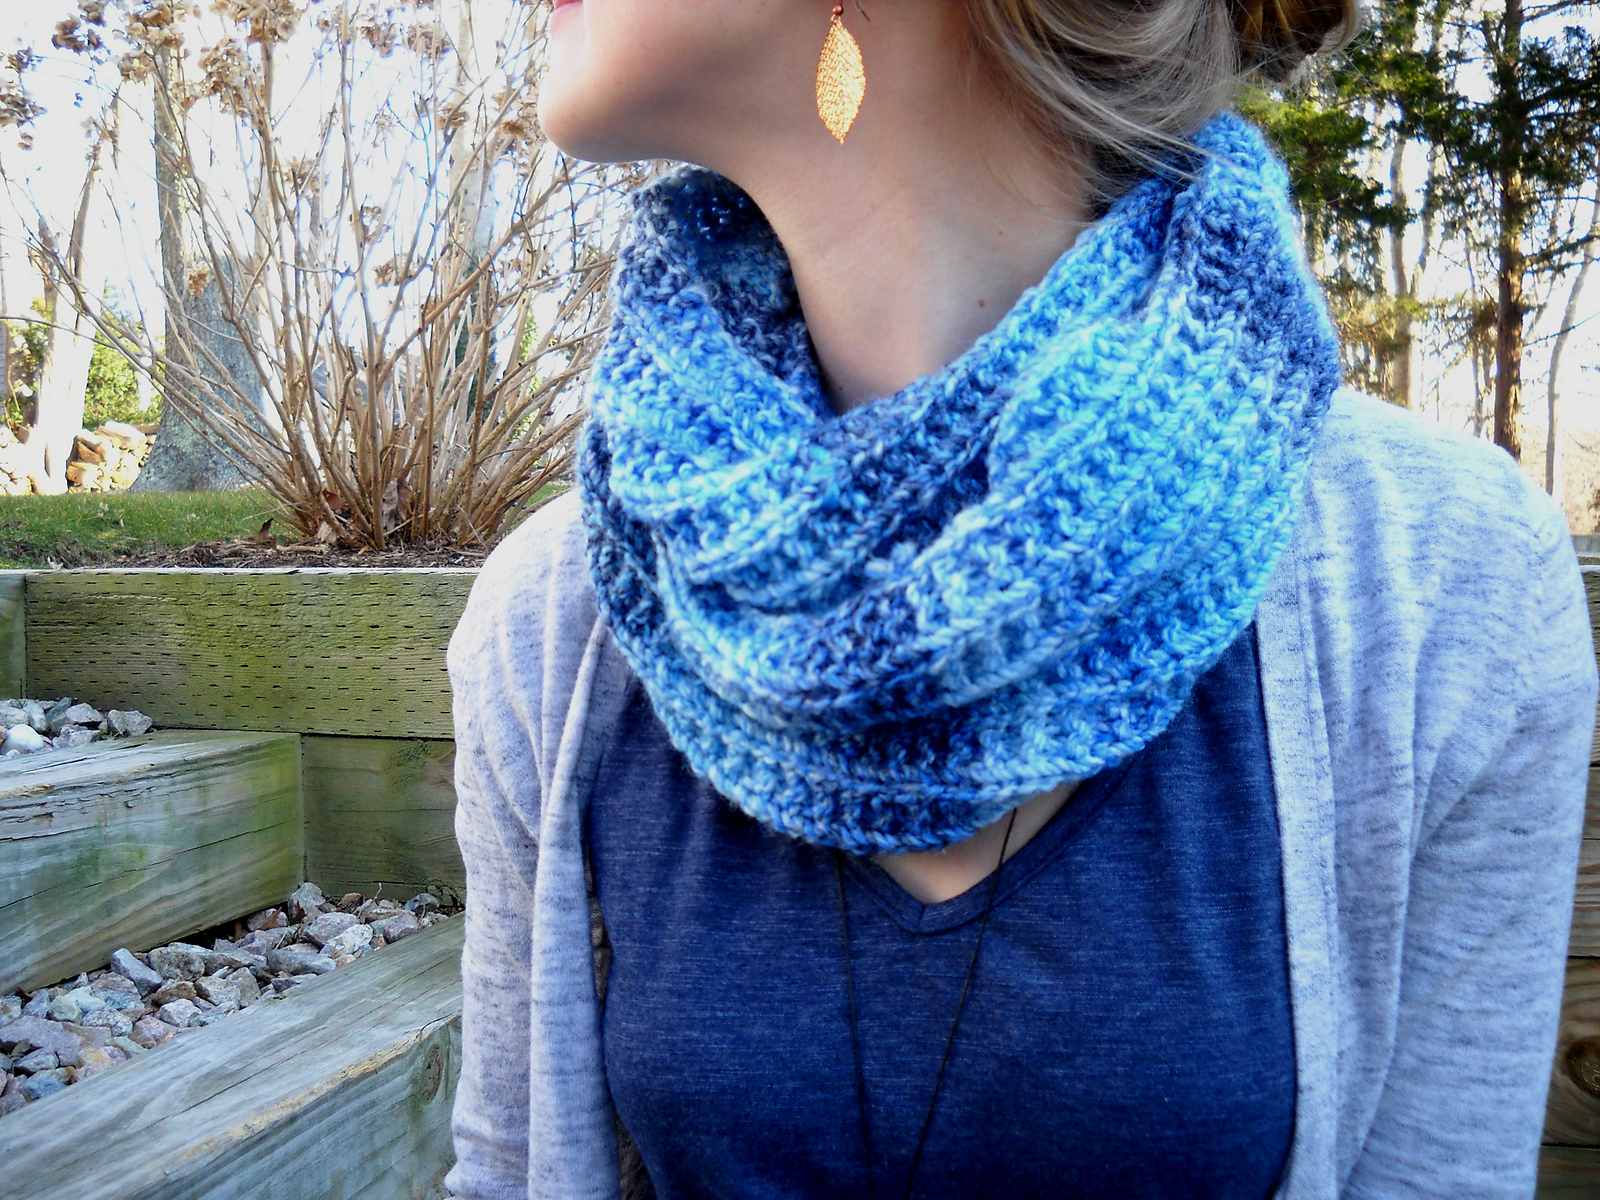 Knitting Pattern Infinity Scarf Straight Needles : wiseknits: Blues Infinity Scarf - Free Pattern!